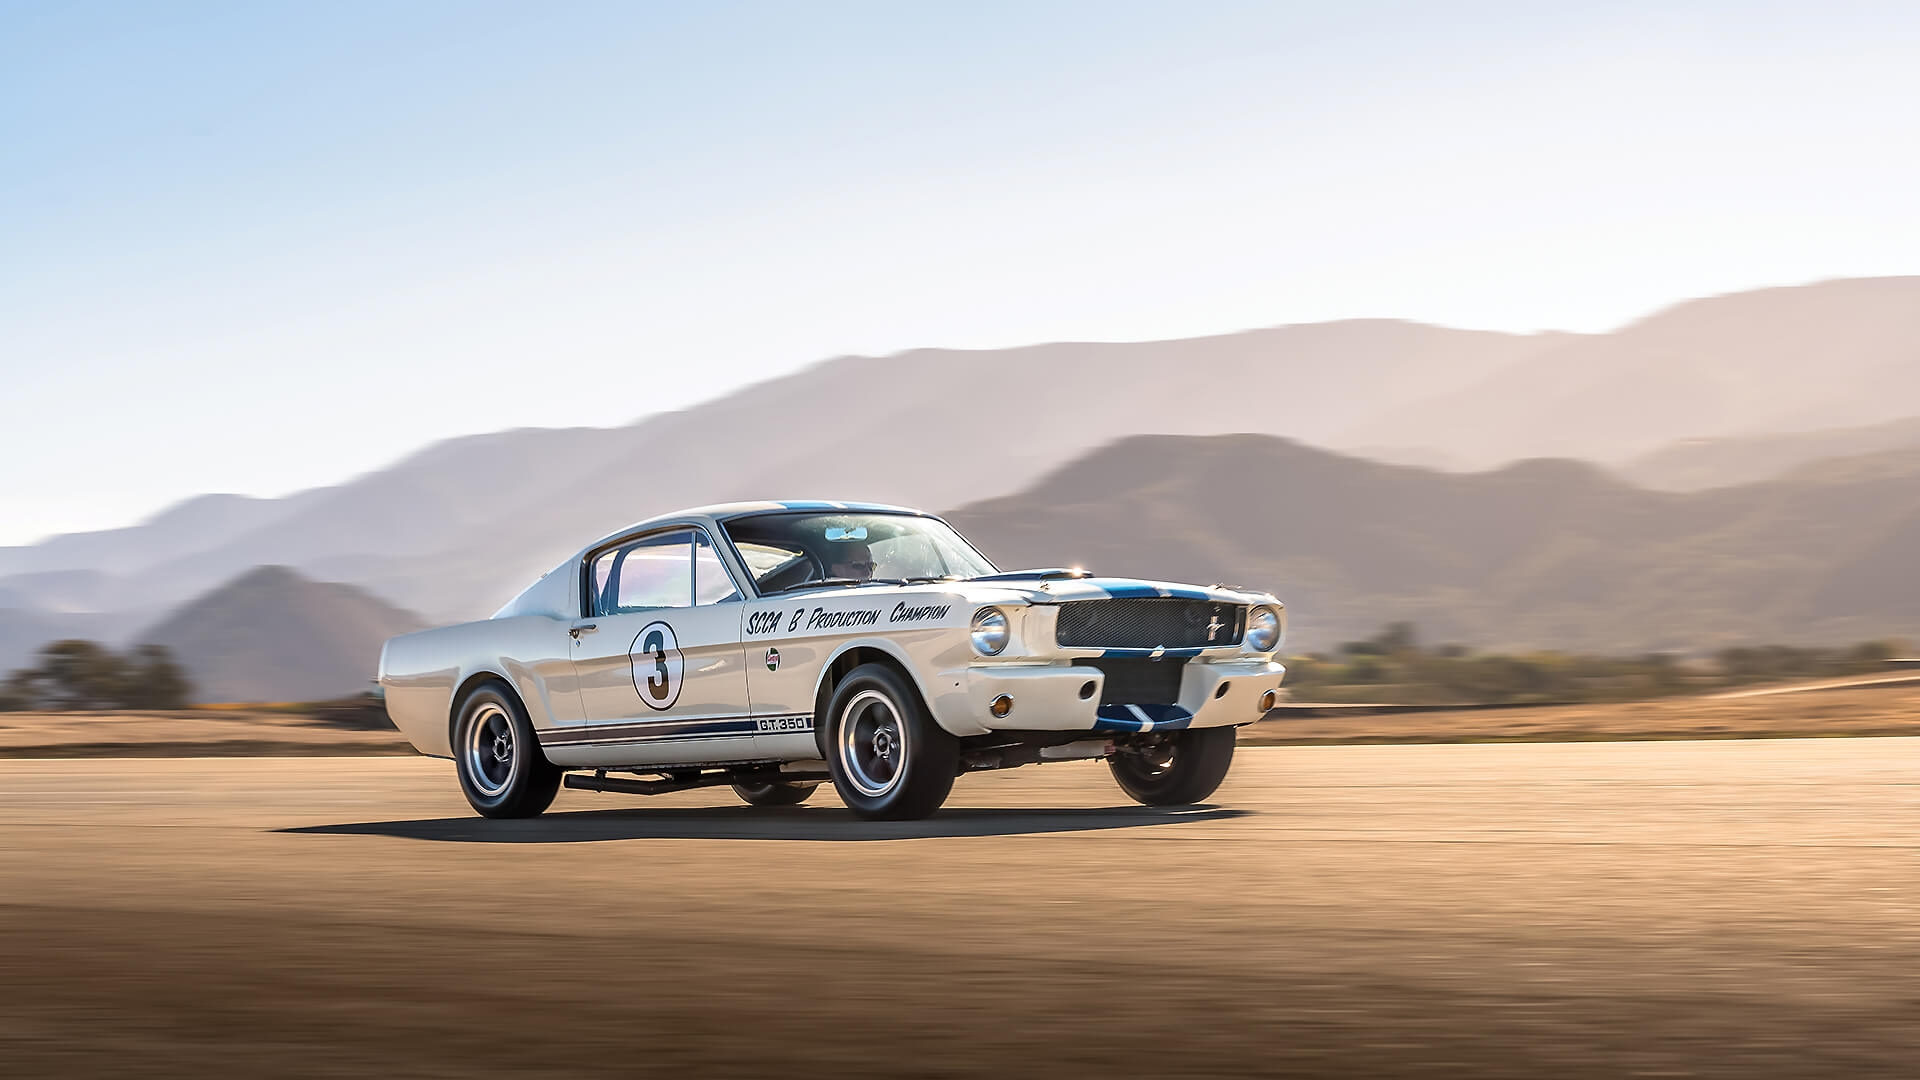 D-Day: The 2018 Scottsdale sales